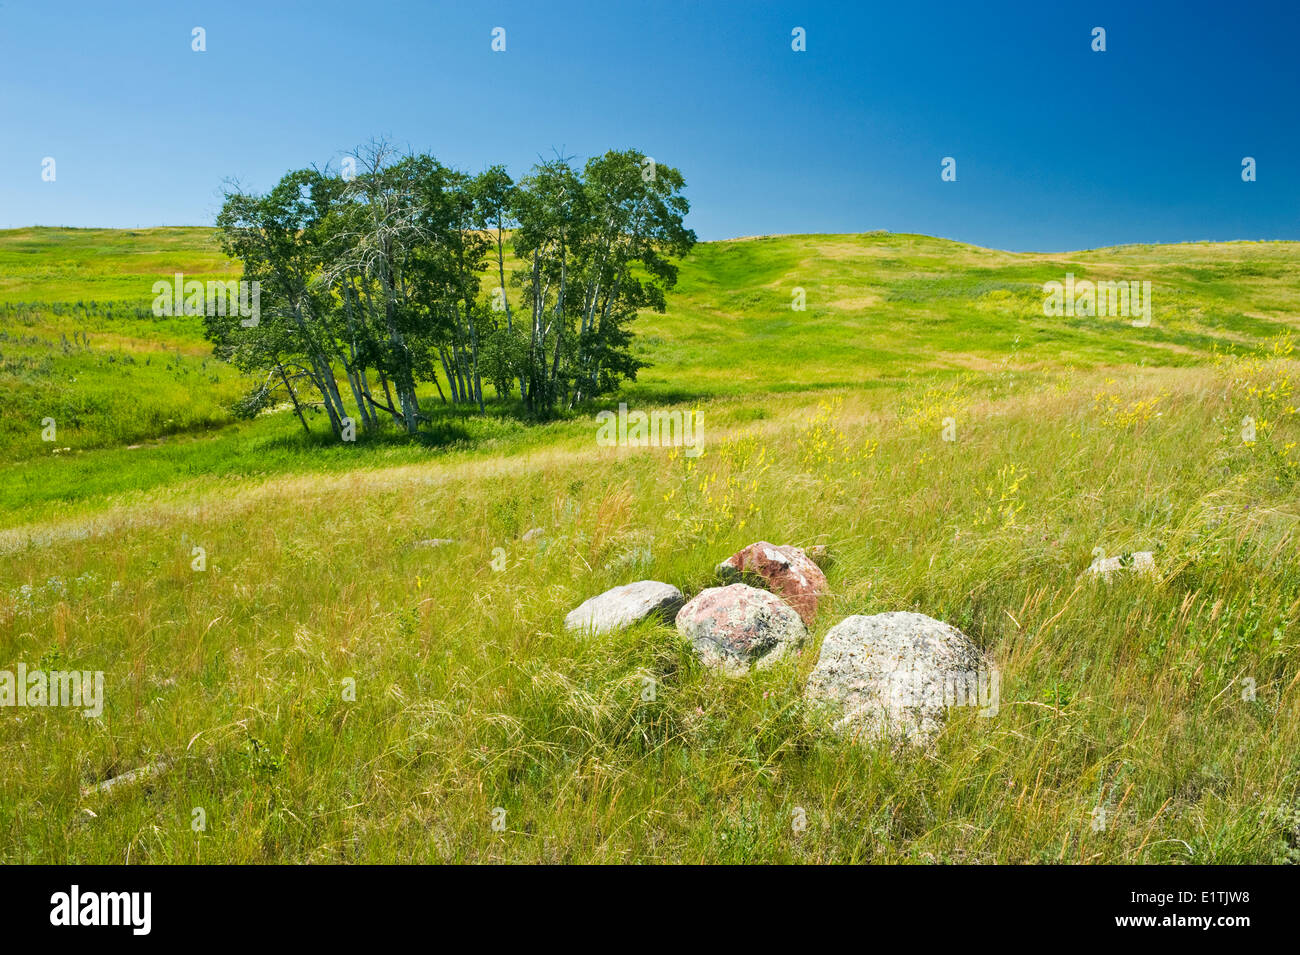 near Swift Current, Saskatchewan, Canada - Stock Image